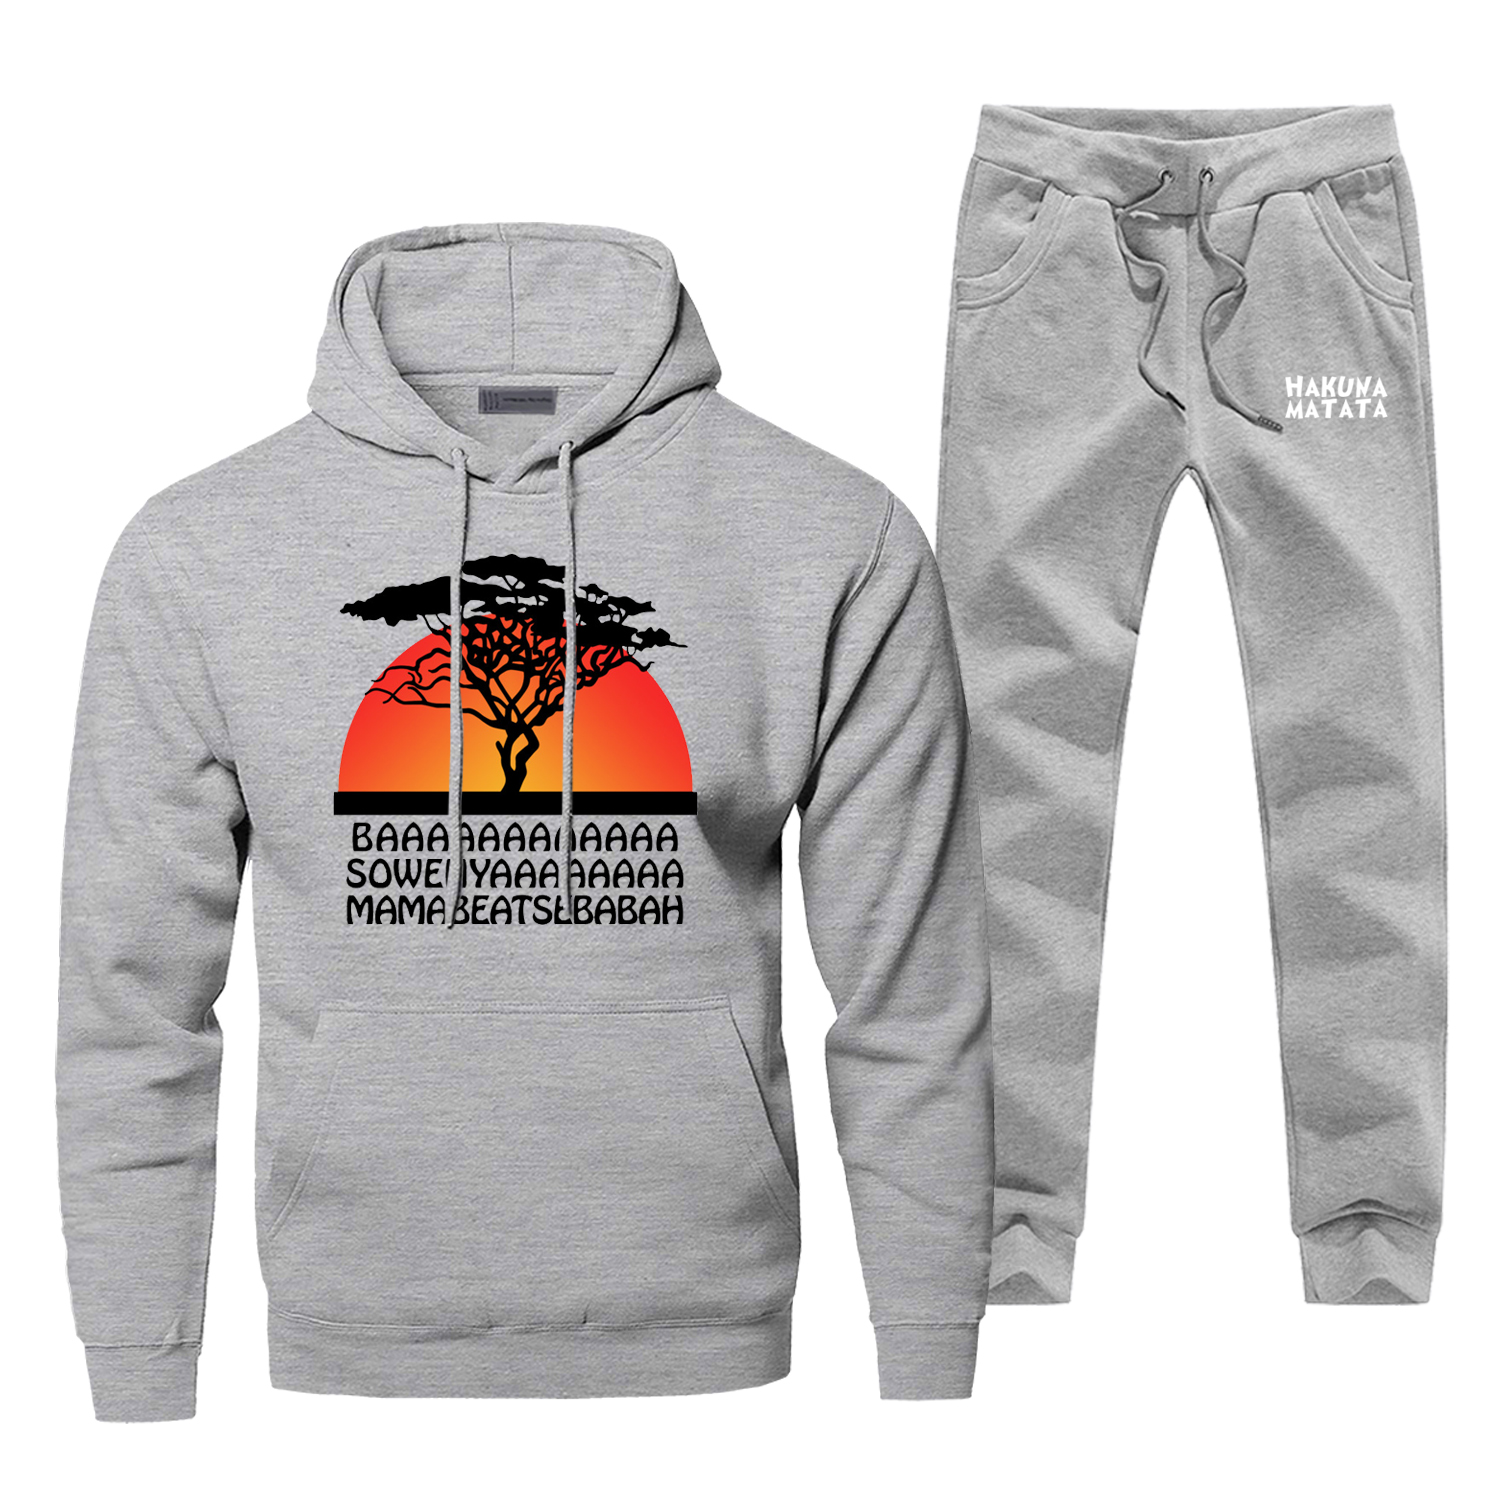 The Lion King Hakuna Natata Men Hoodie Male Pants Set Sweatshirt Mens Hoodies Sweatshirts Sets Two Piece Pant Pullover 2Pcs Coat